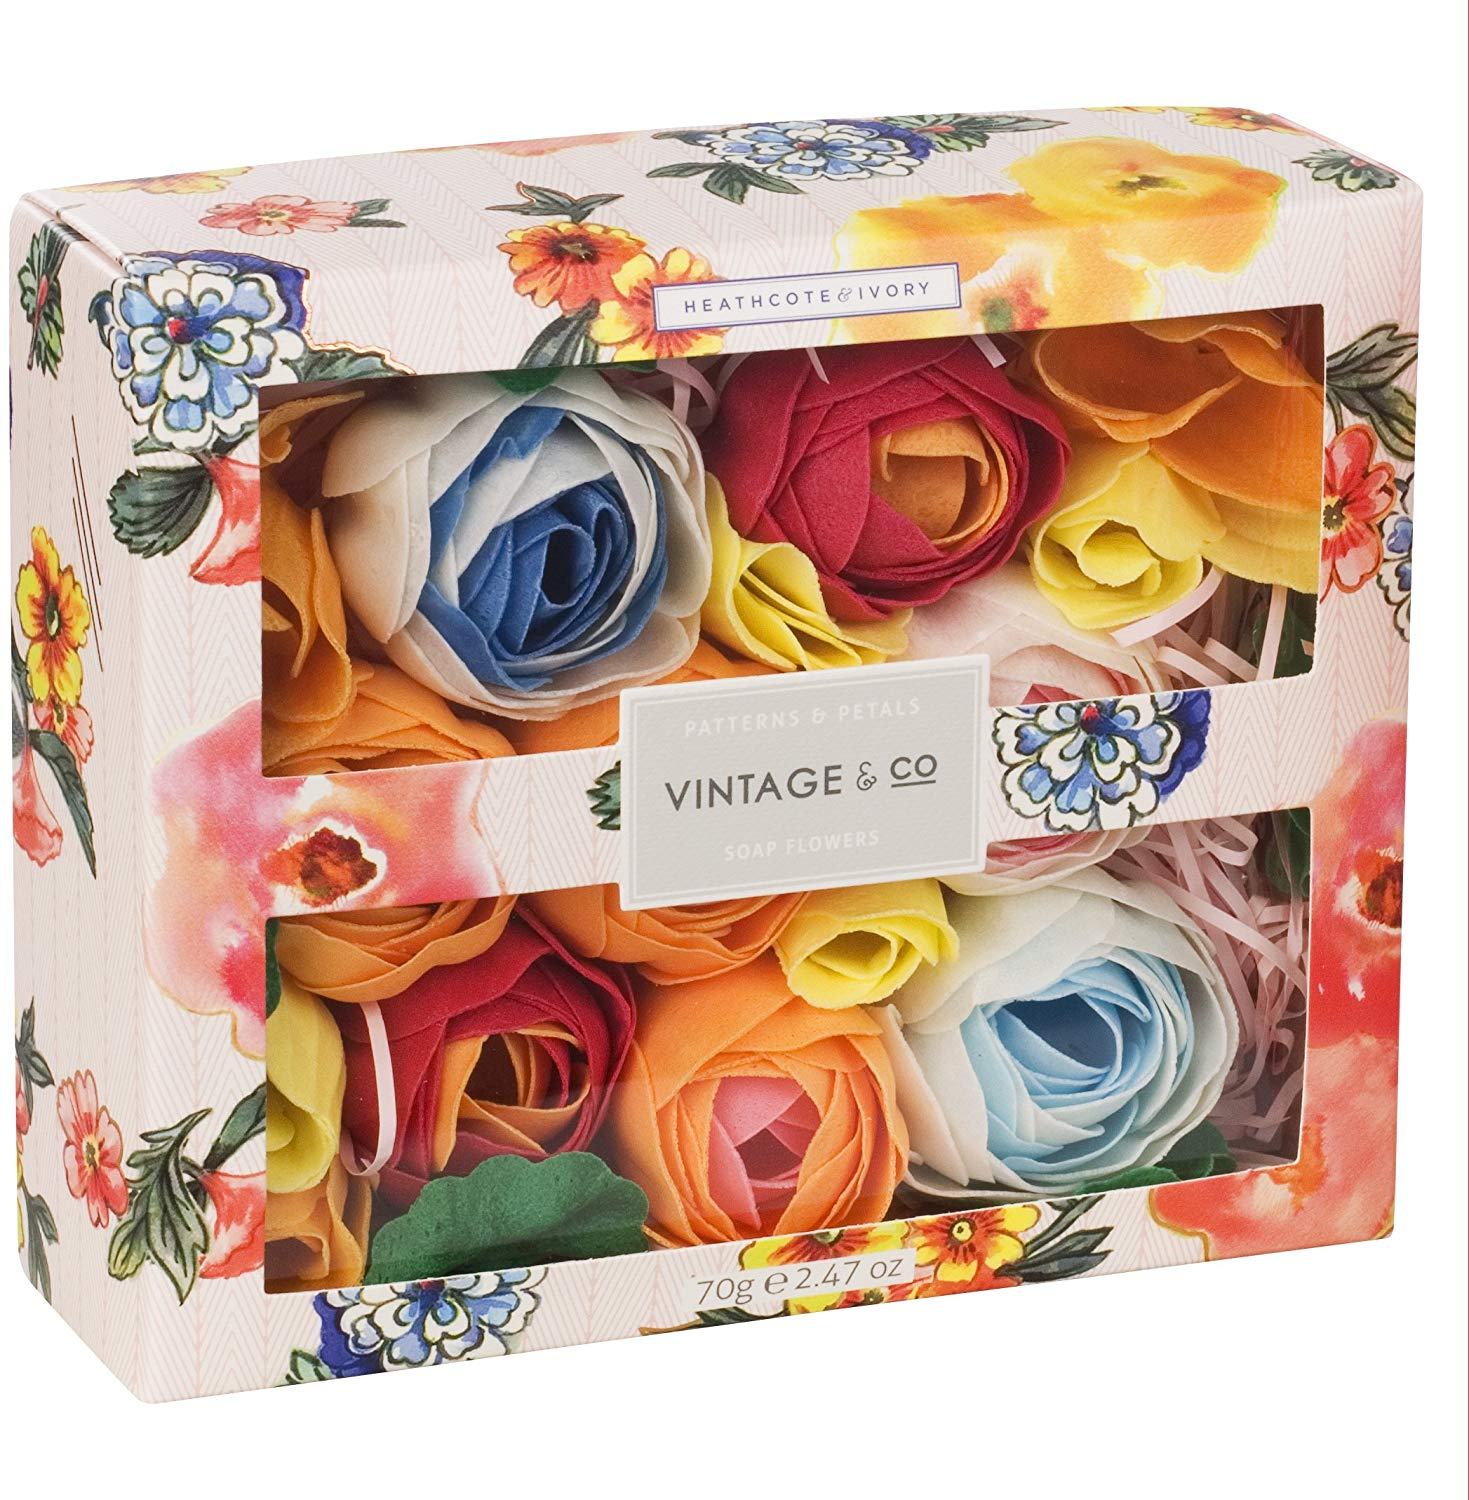 Vintage & Co Patterns and Petals Soap Flowers £8 Prime +4.49 Non Prime